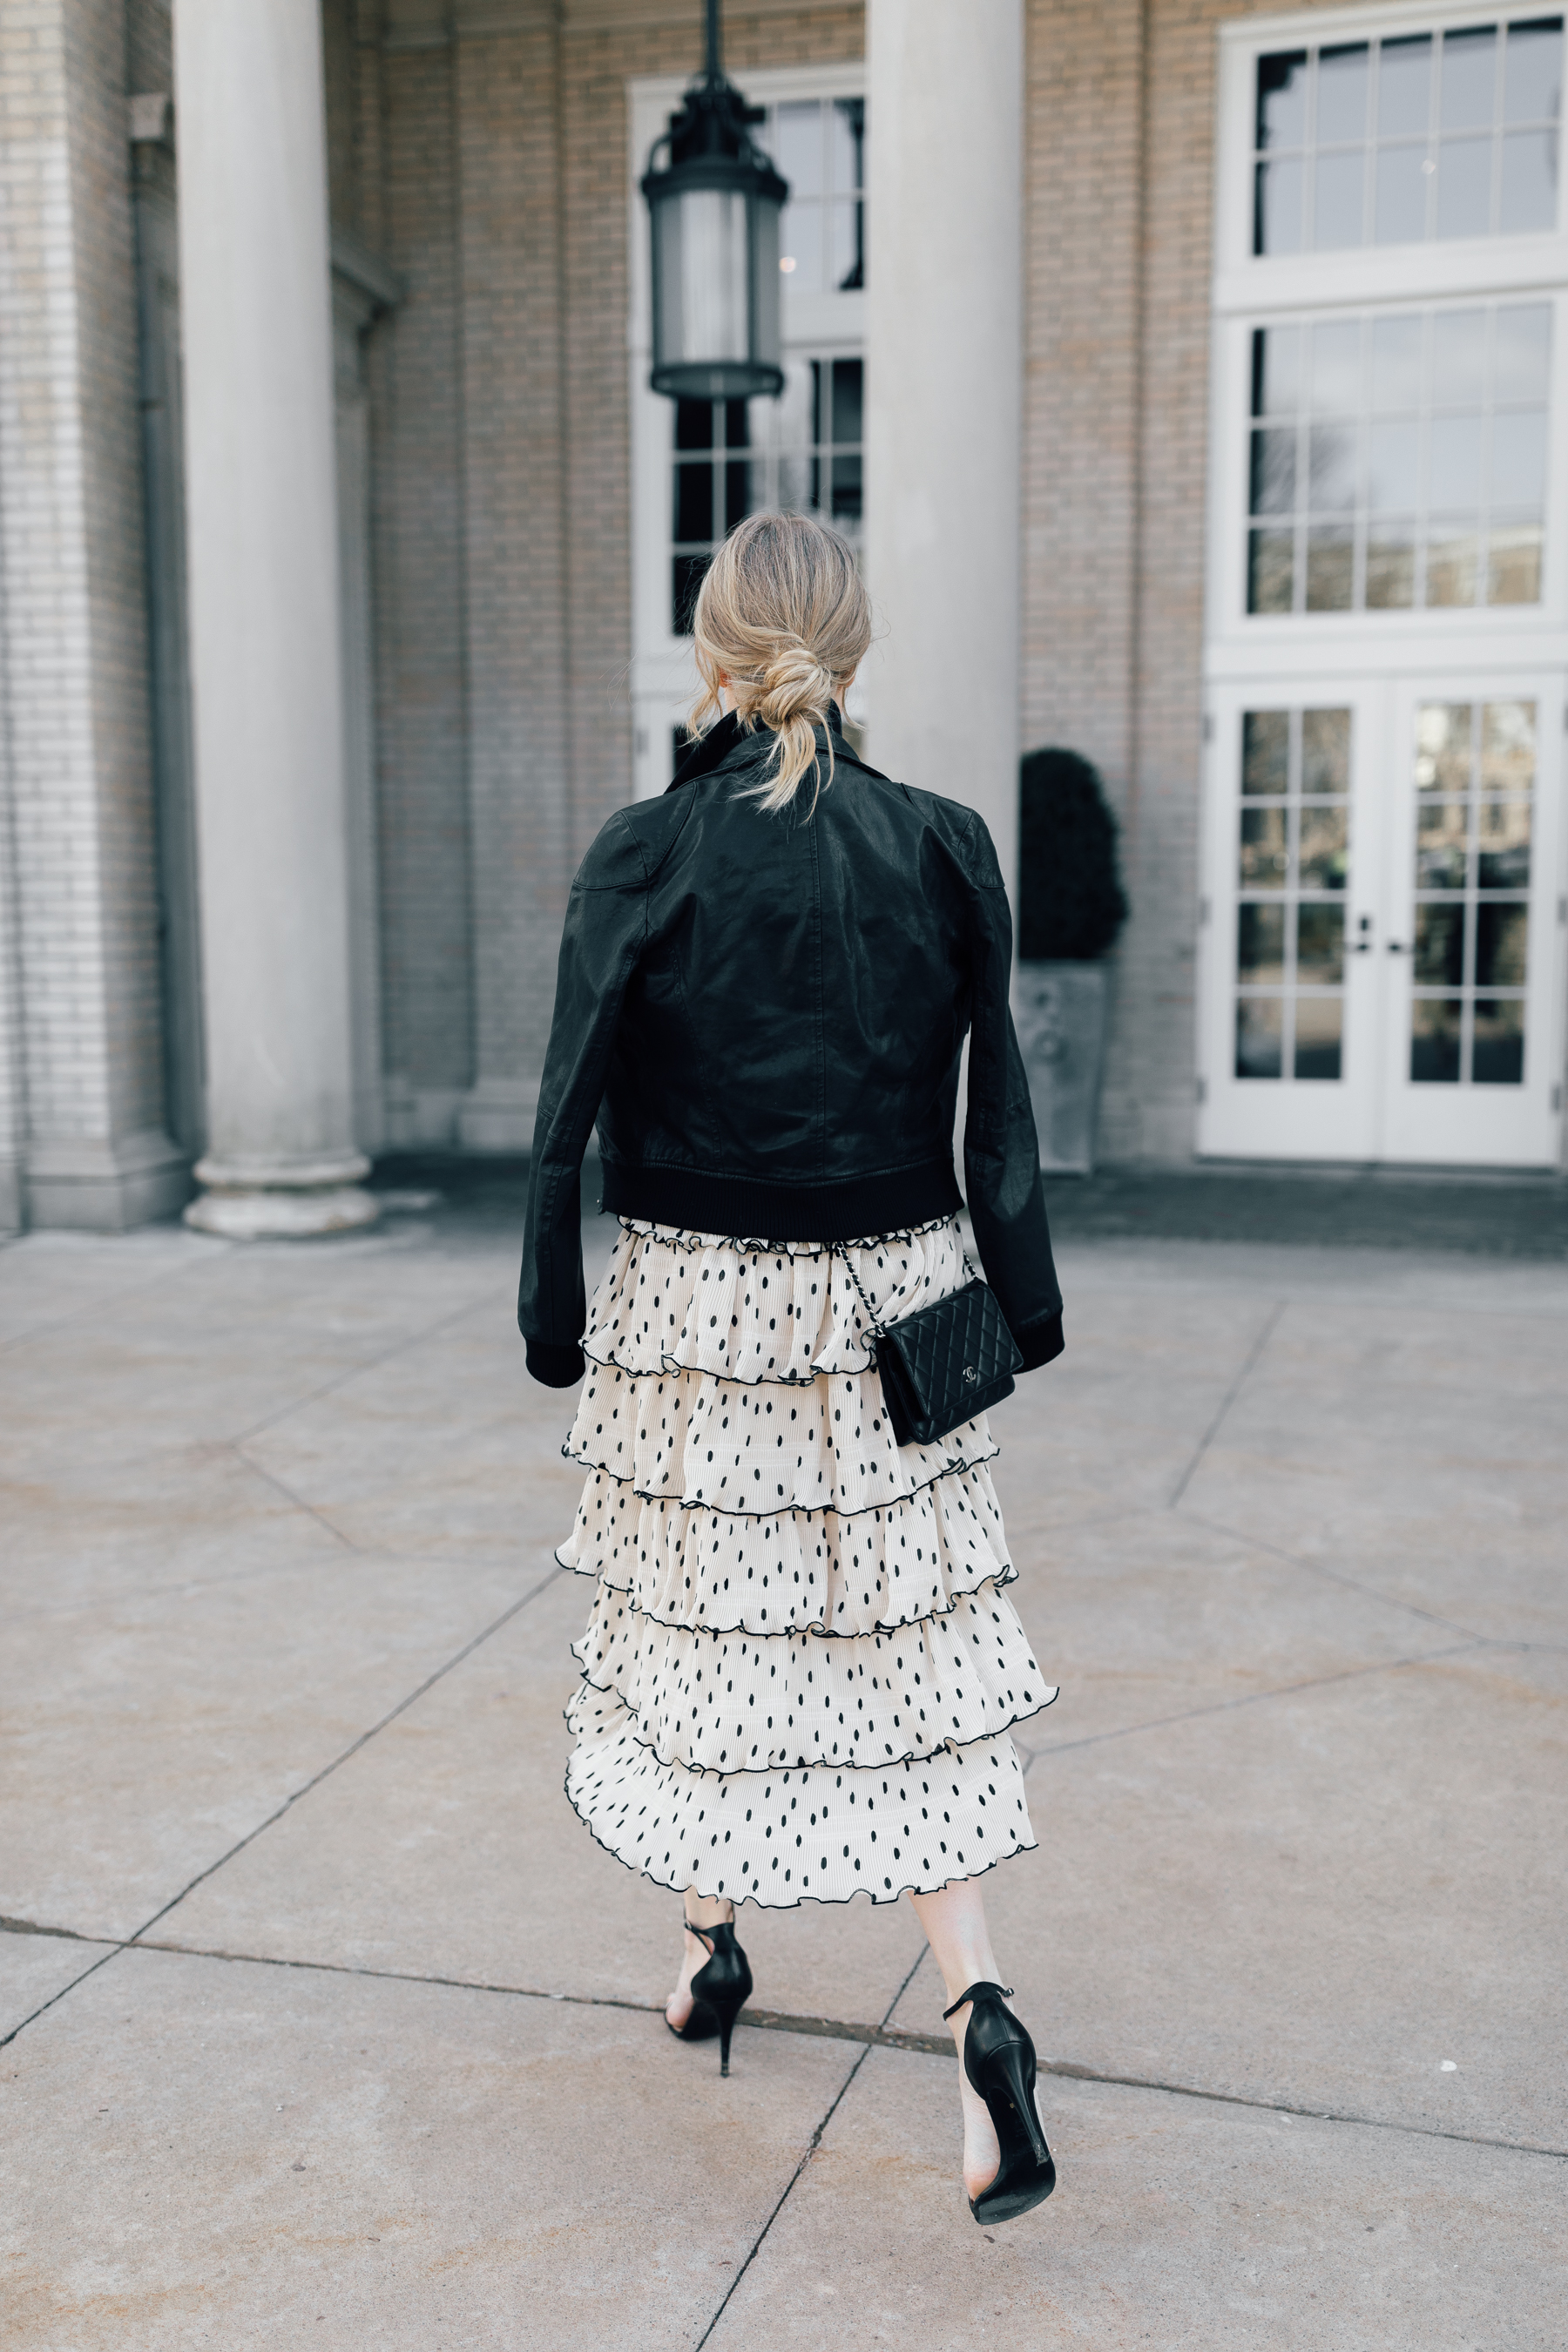 Stephanie Trotta wearing a messy chignon wearing a Ganni dress, black leather jacket, and a Chanel WOC bag